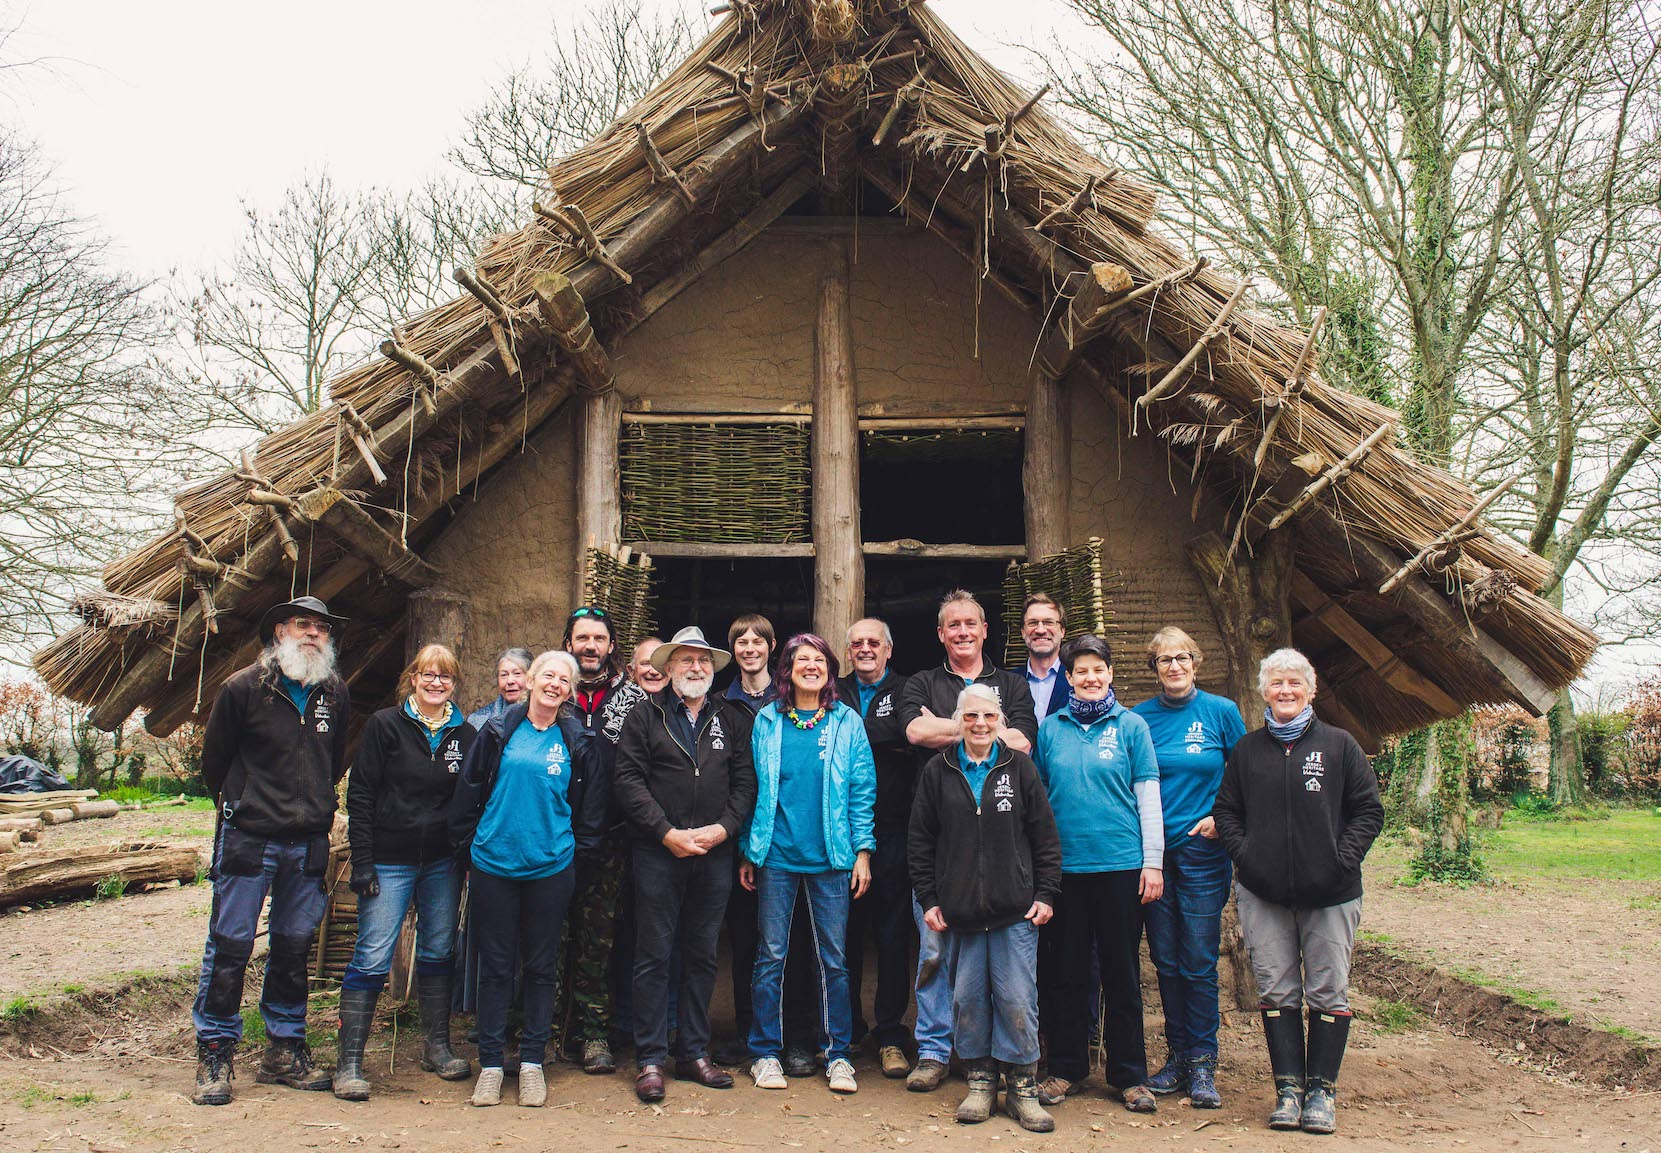 Volunteer - Neolithic Longhouse volunteers at launch 21 03 2019